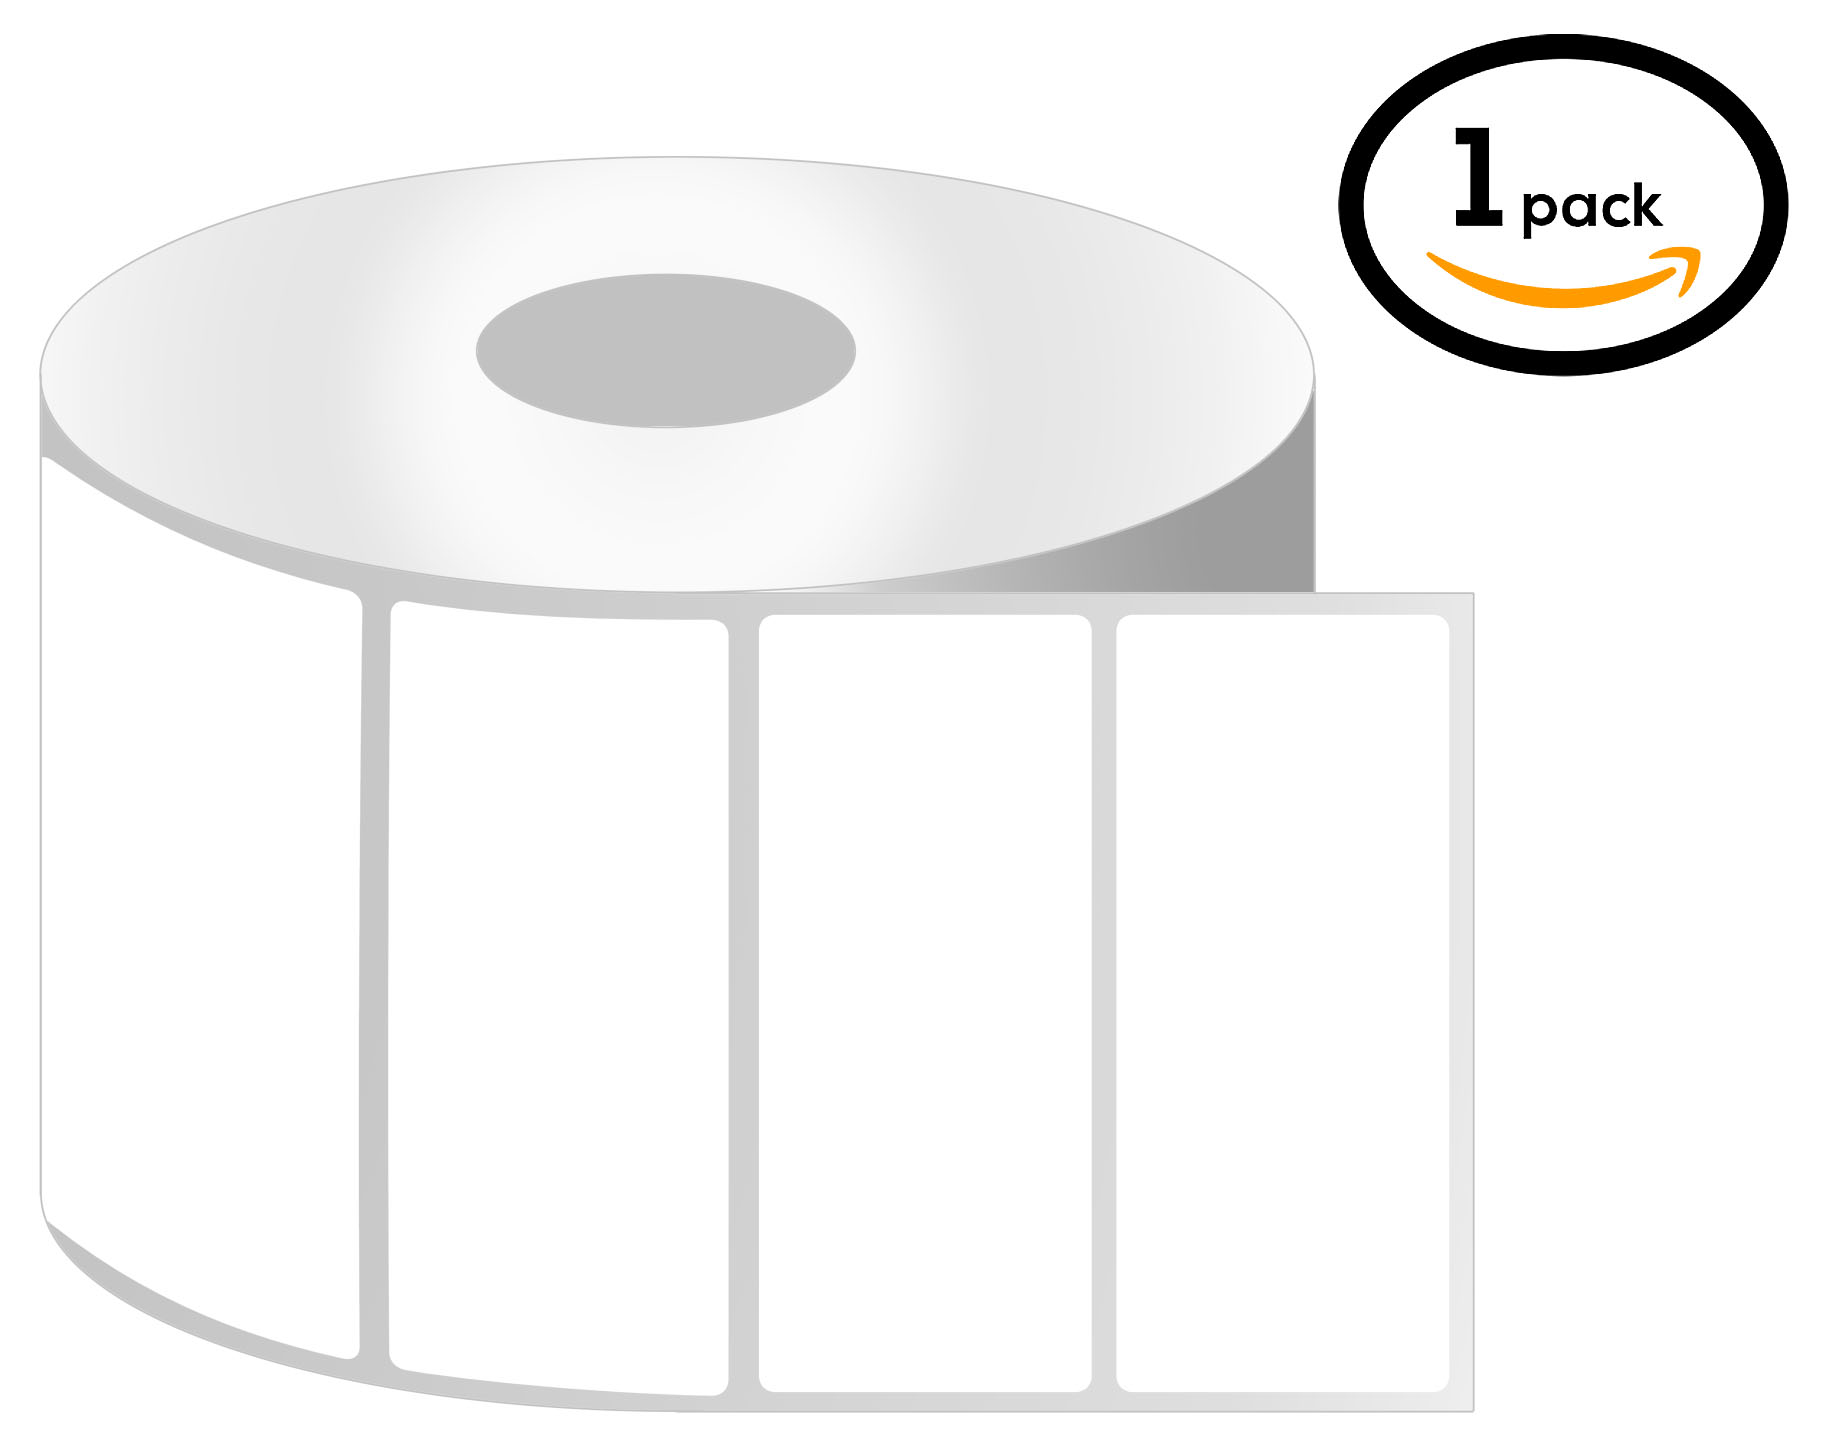 1 Inch Core - 3 x 1 Zebra Compatible Direct Thermal Labels 1 Roll